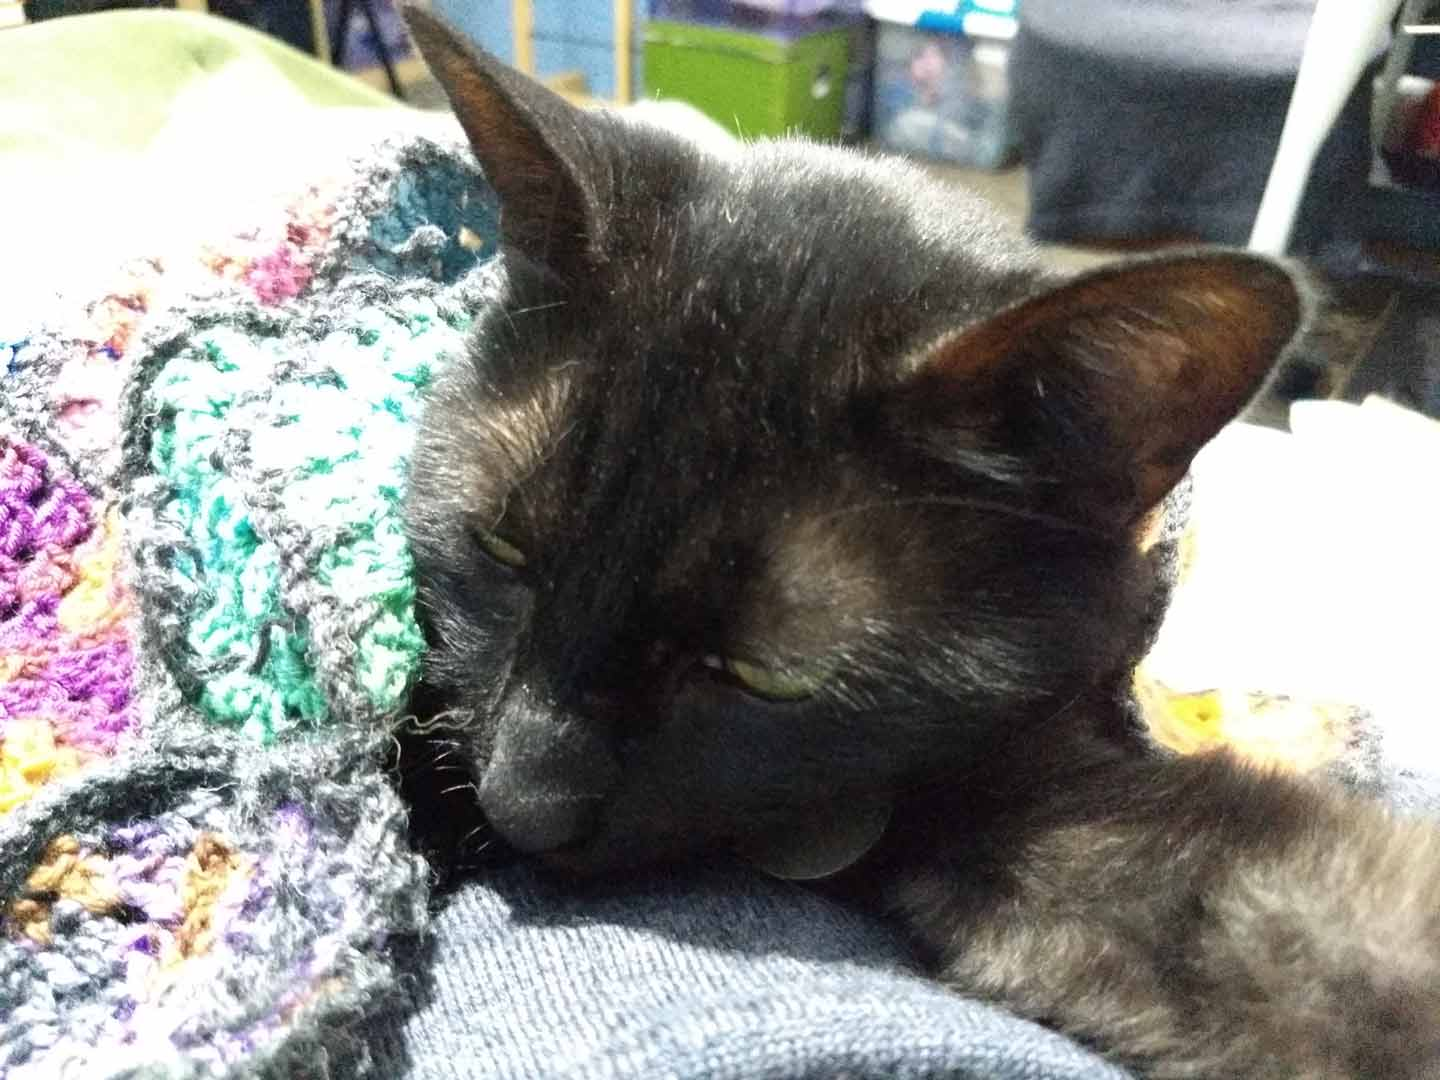 Black cat under crochet blanket on top of grey sweater snuggling his human.